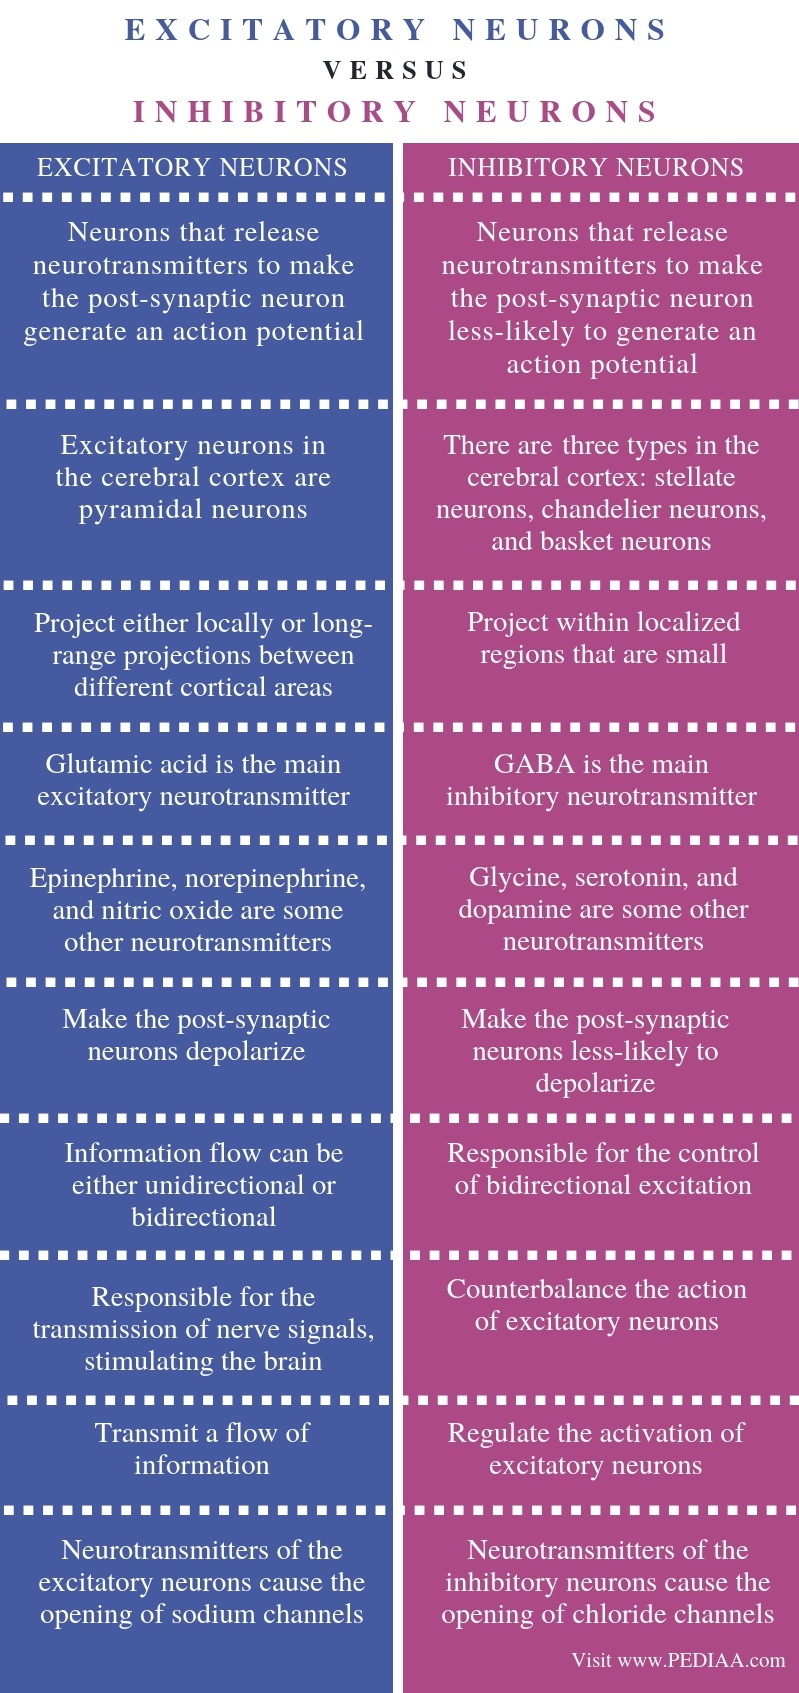 Difference Between Excitatory and Inhibitory Neurons - Comparison Summary